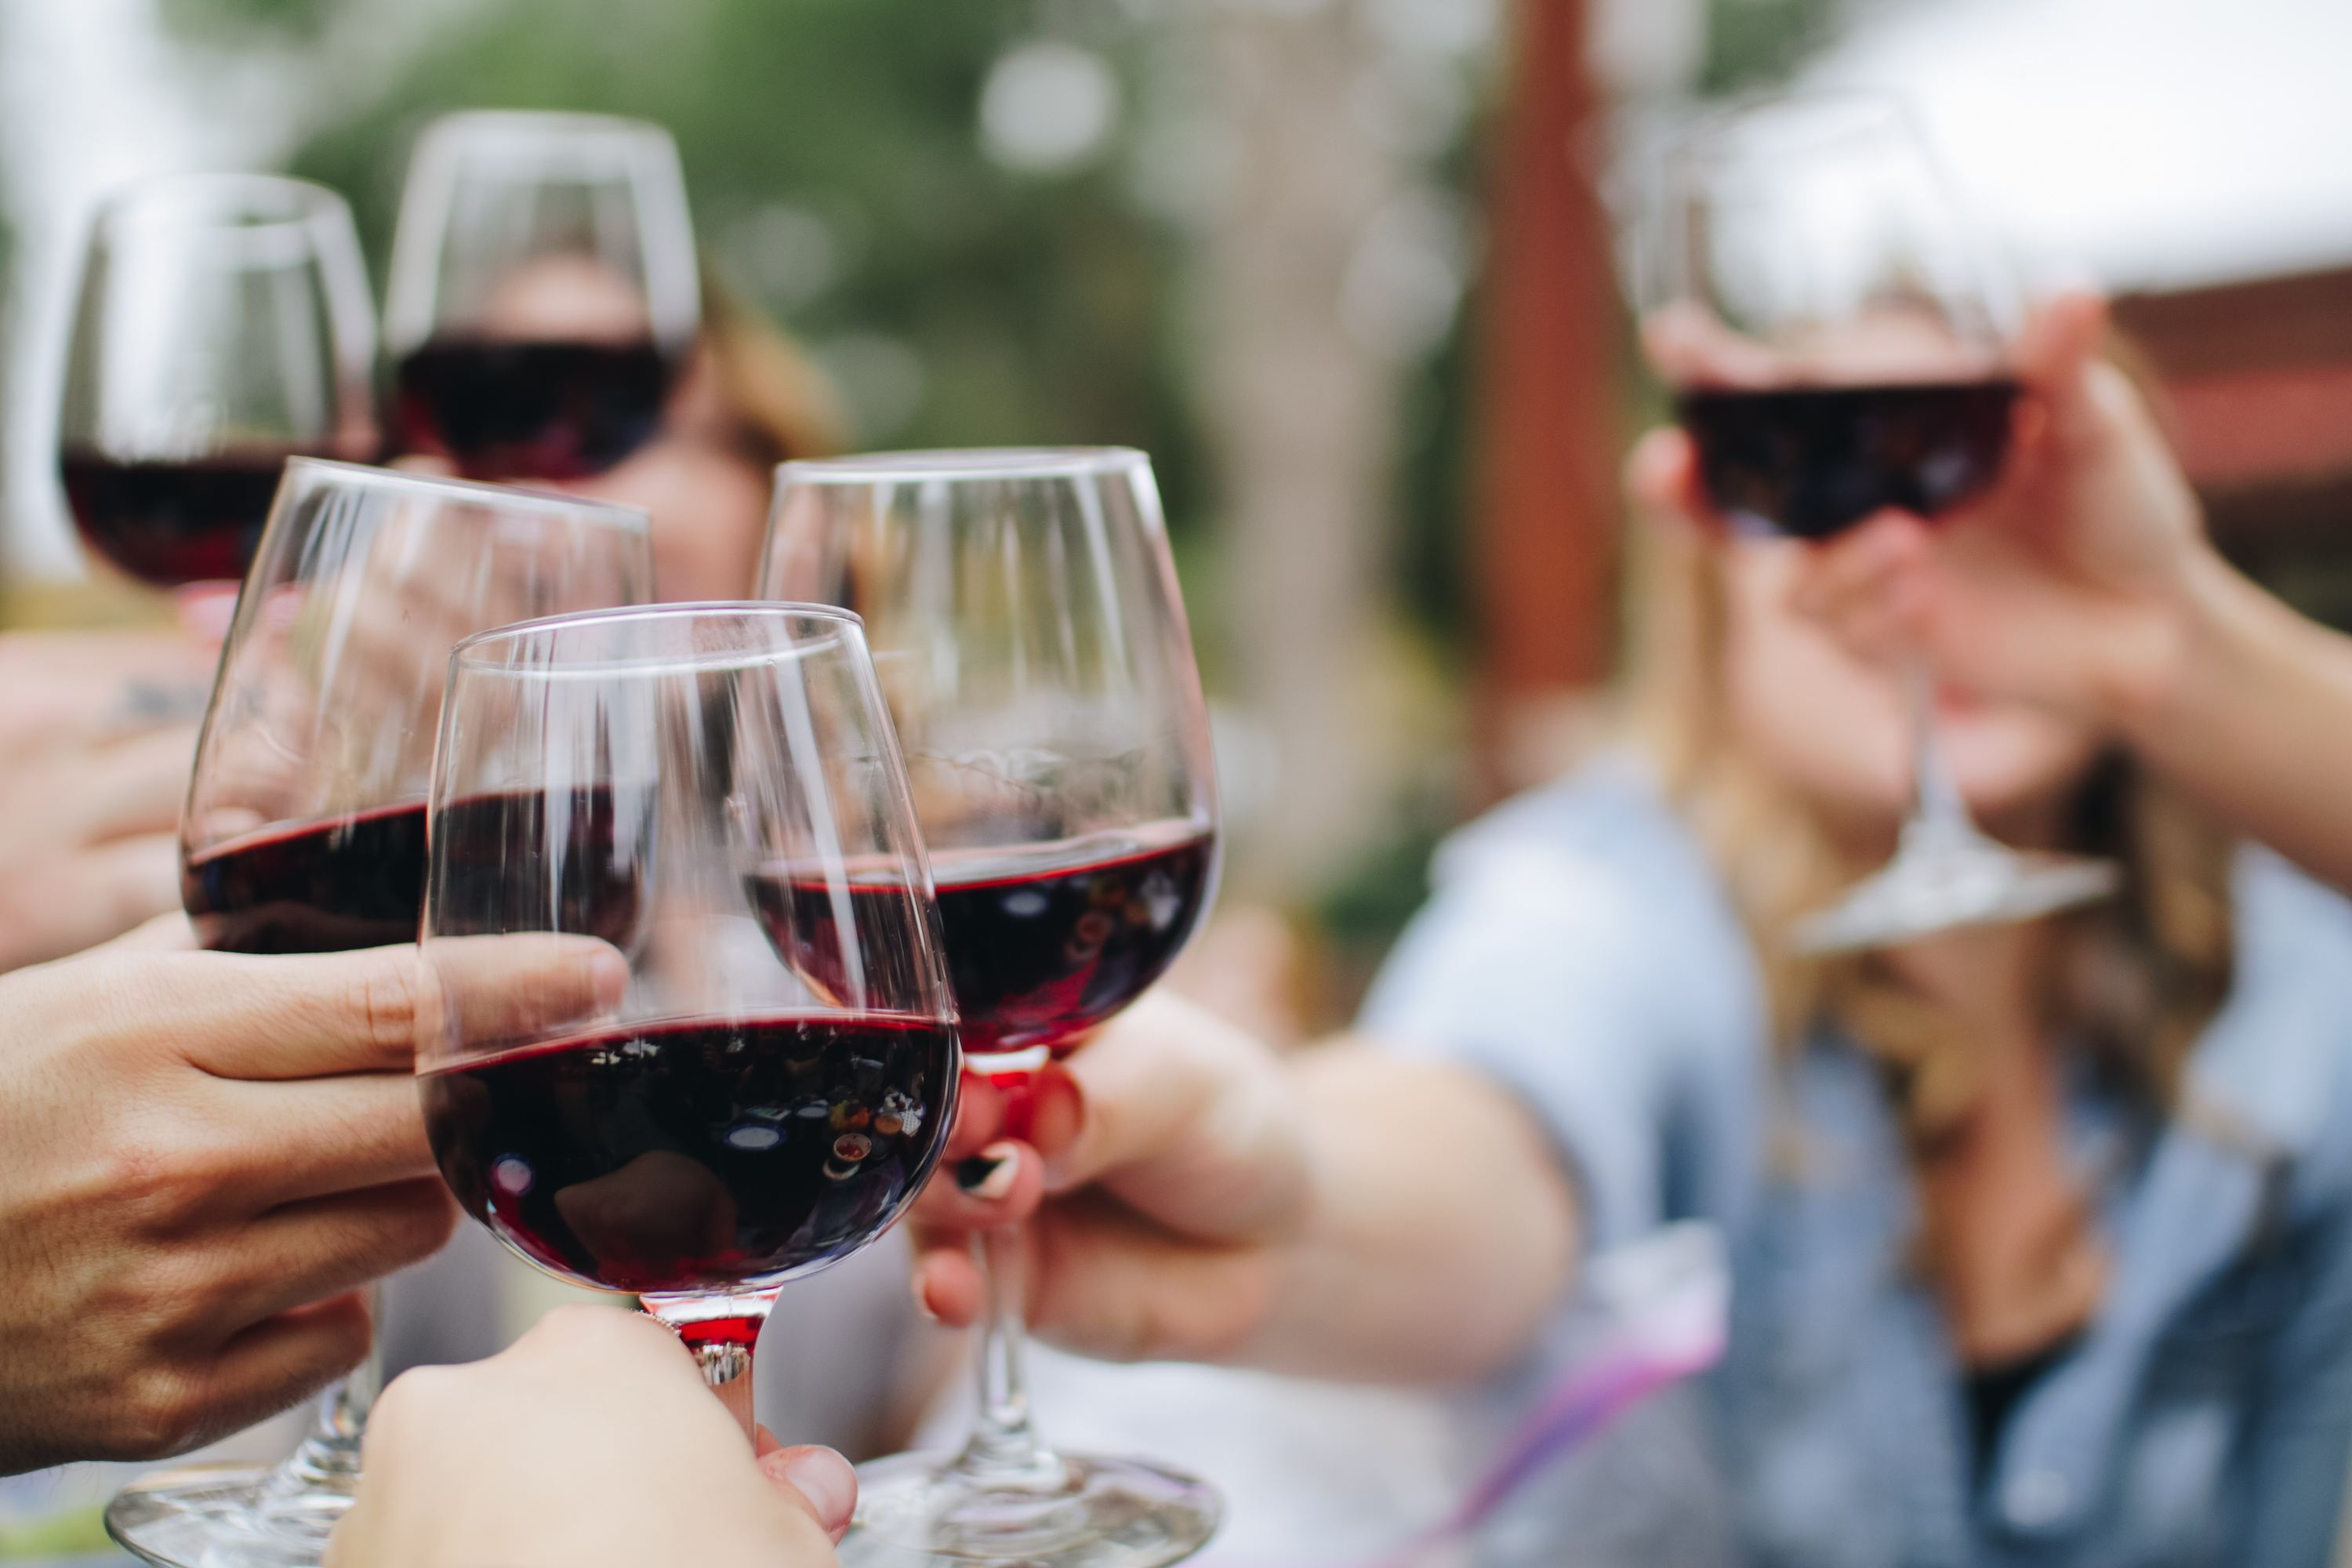 group of people with wine glasses cheering